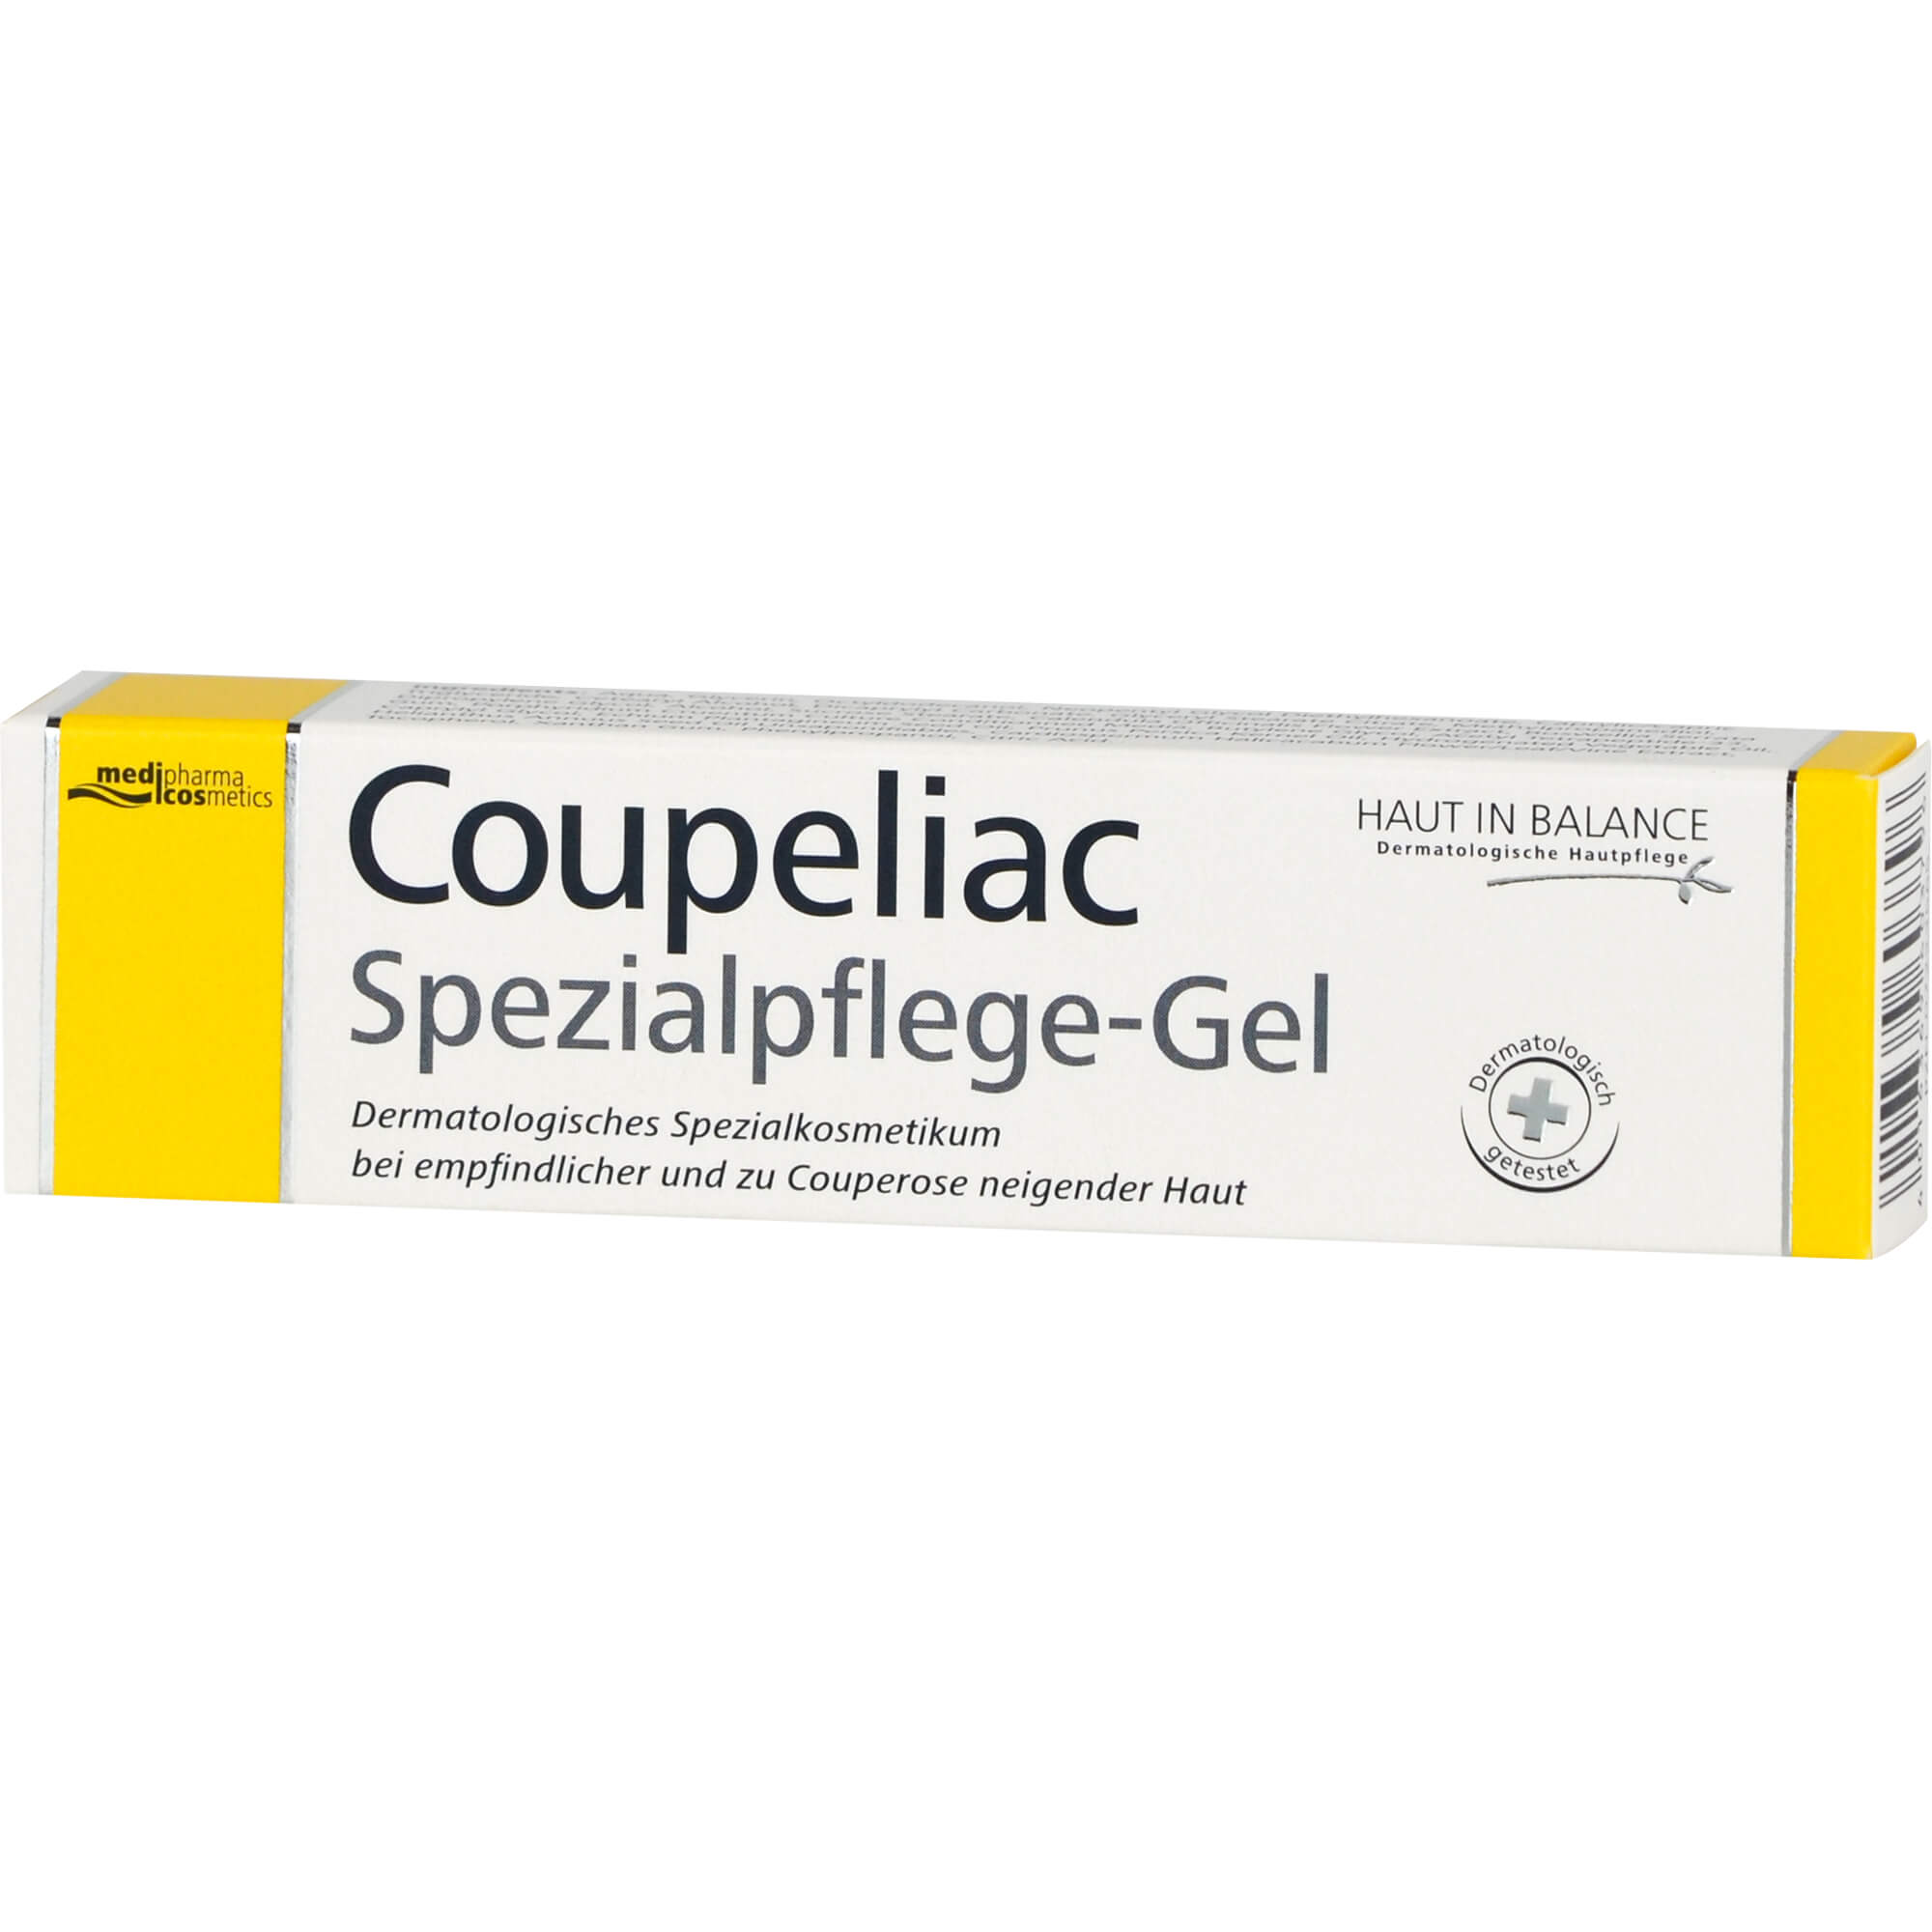 HAUT IN BALANCE Coupeliac Spezialpflege-Gel